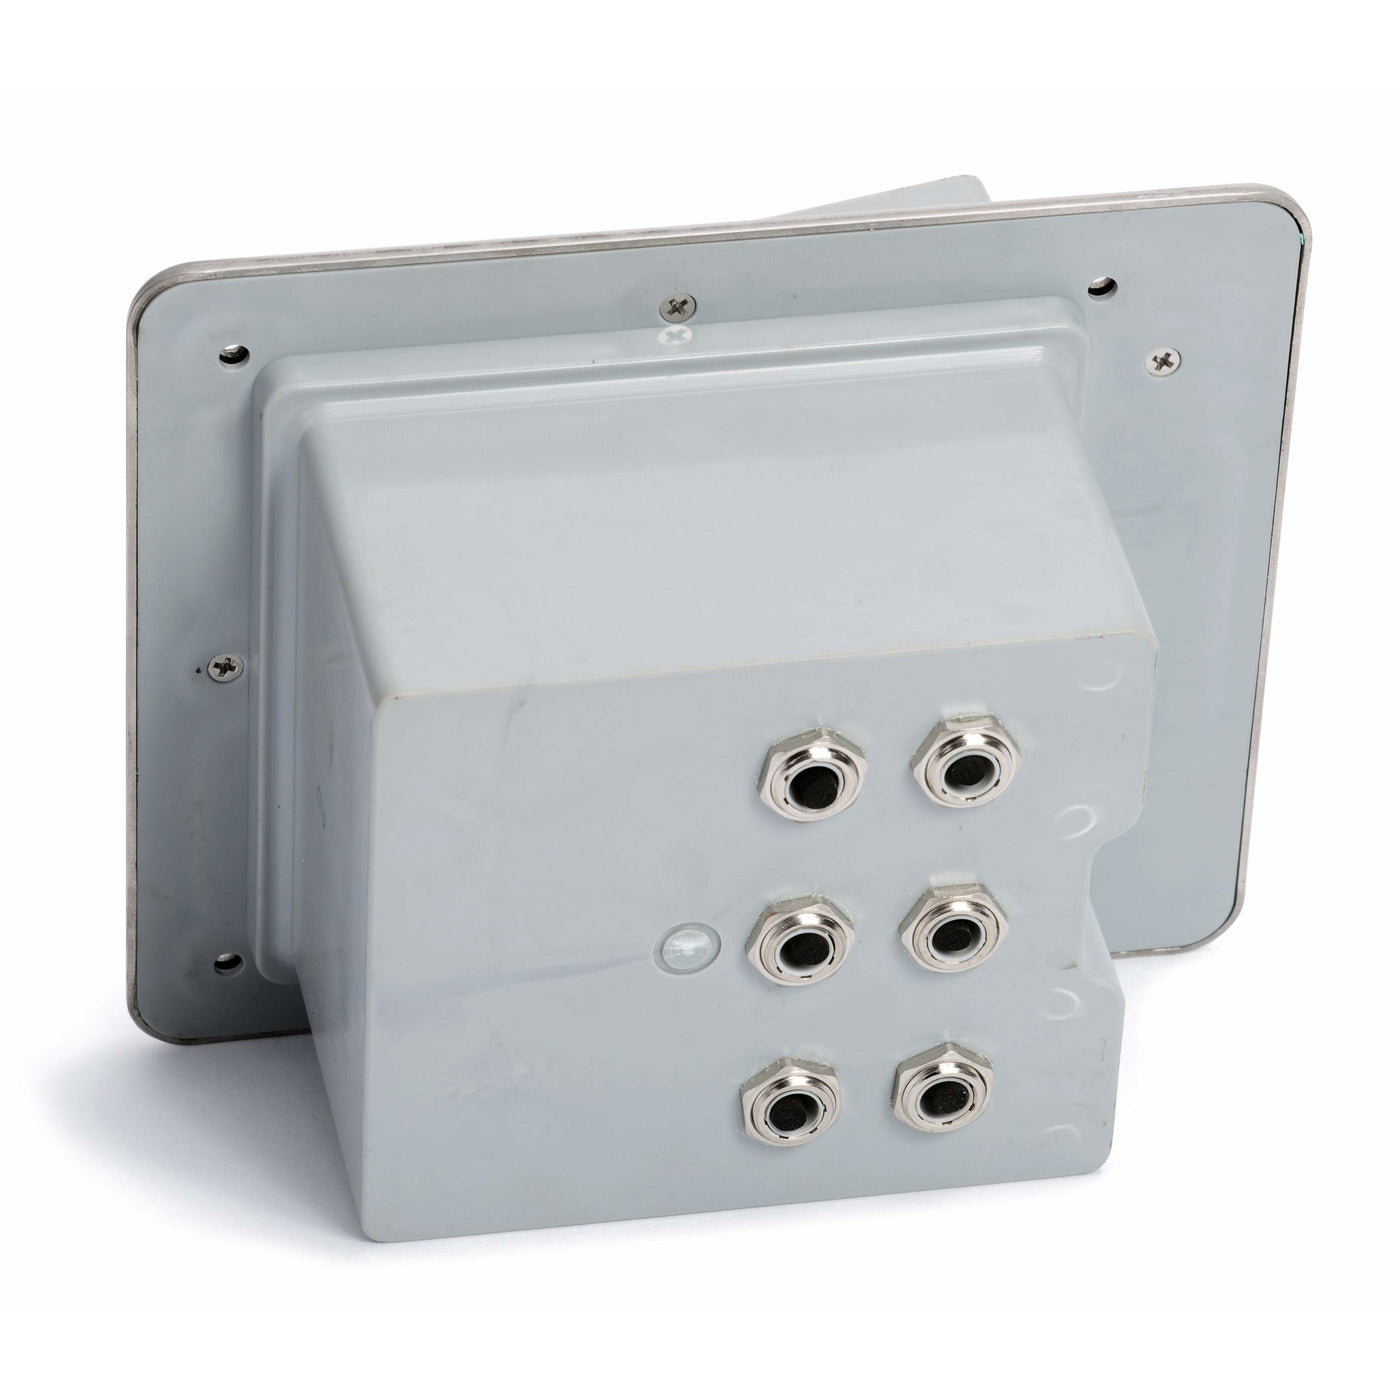 Exterior Pop Up Outlet: Outdoor Ground Pop Up Waterproof Power Outlet, Push Button